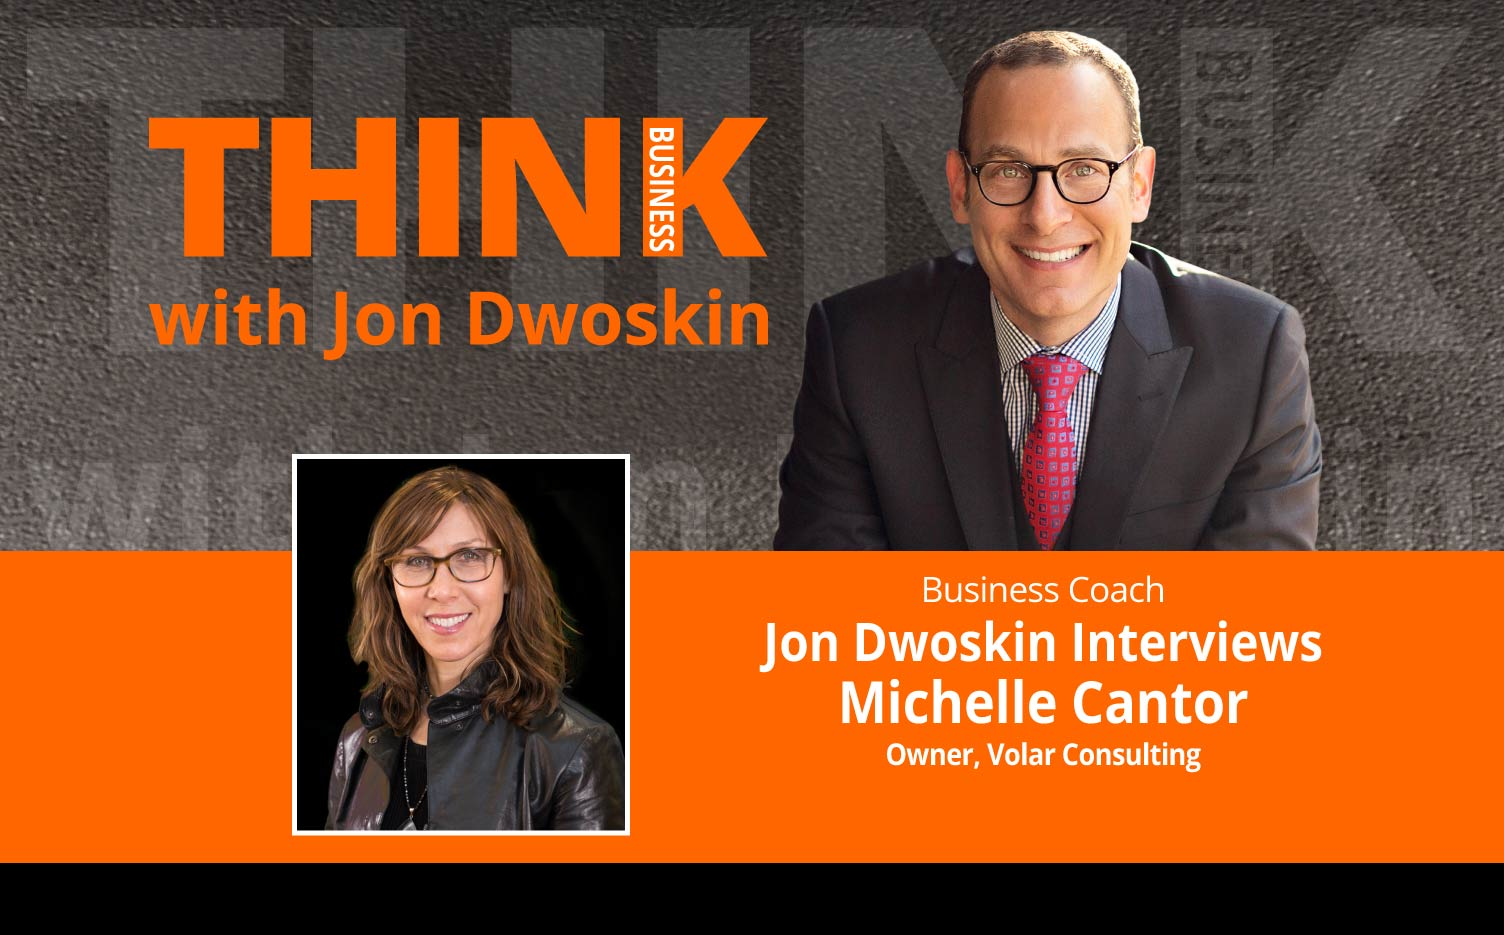 THINK Business Podcast: Jon Dwoskin Interviews Michelle Cantor, Owner, Volar Consulting